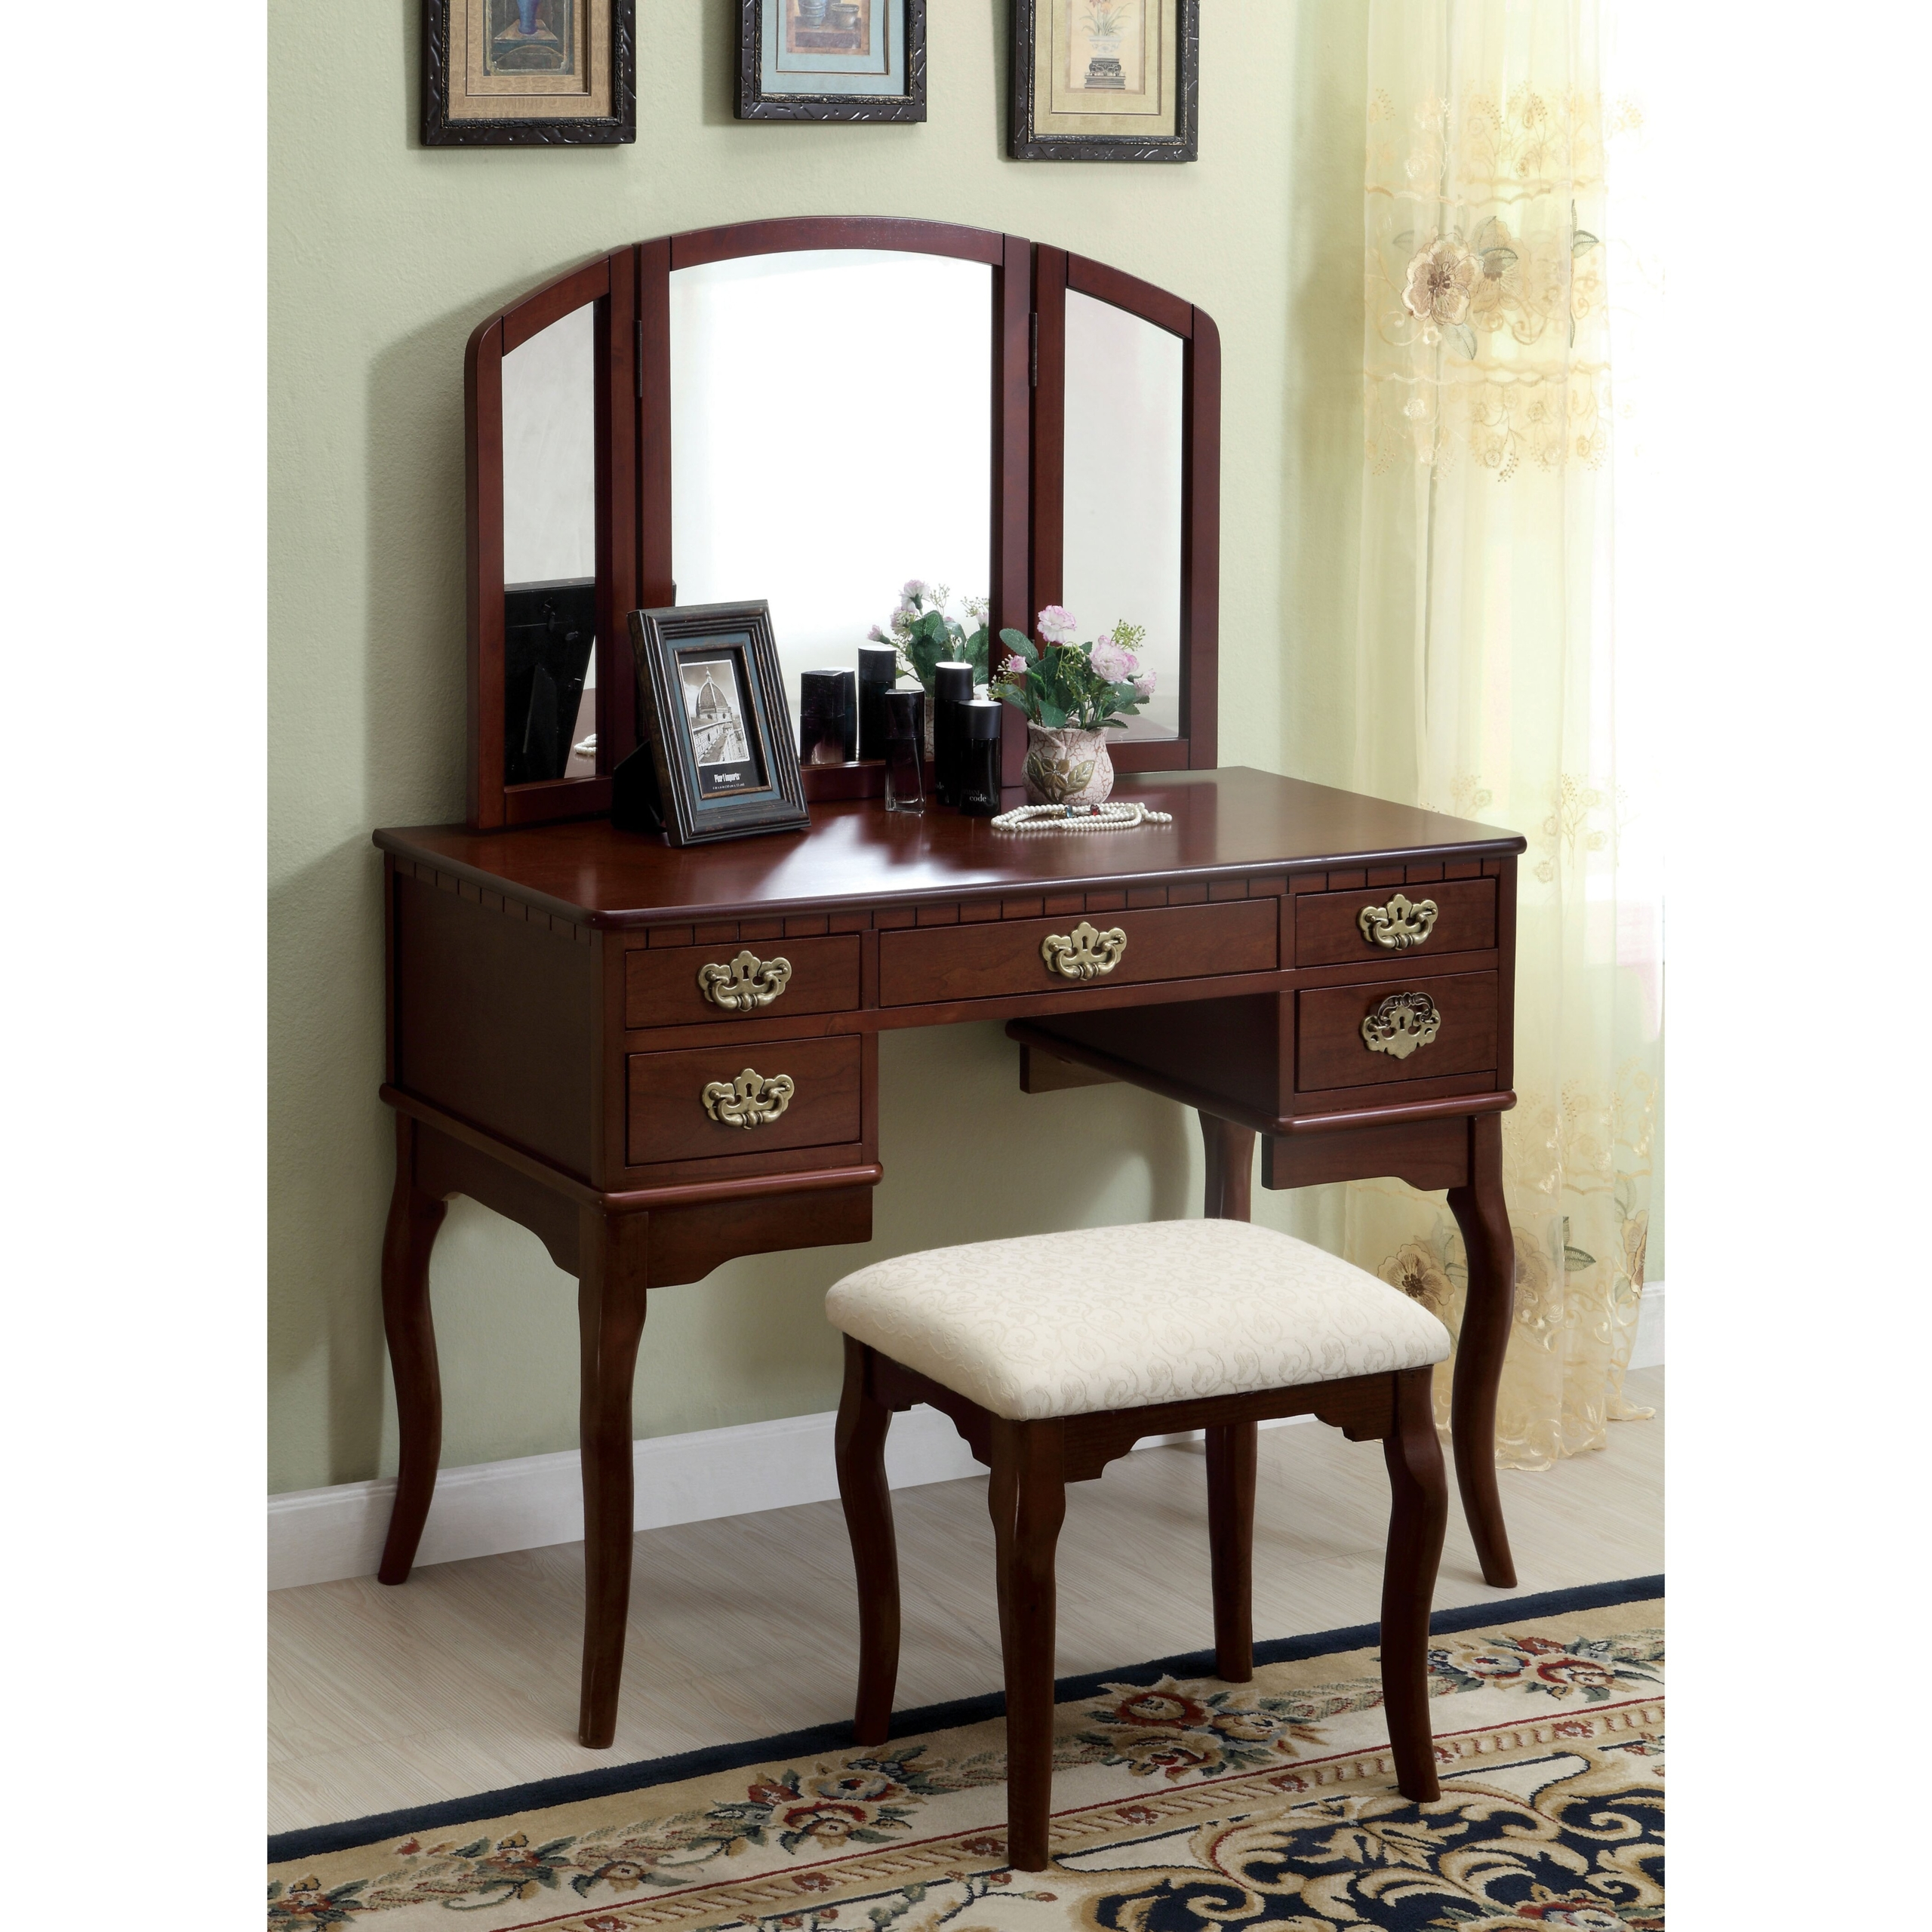 3 Piece Vanity & Stool Set